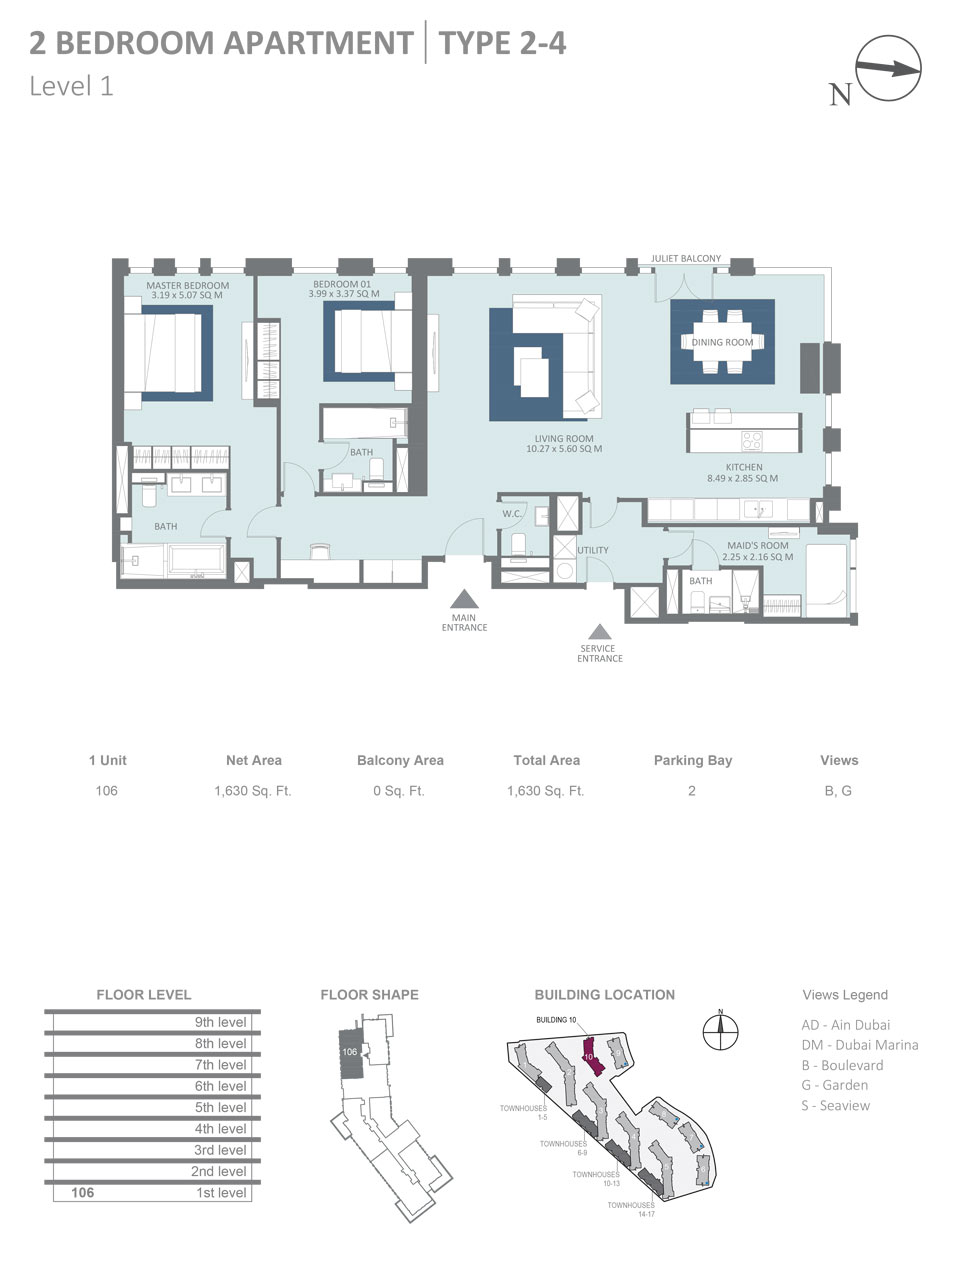 2 Bedroom  Type 2-4 Level 1  Size 1630 sqft